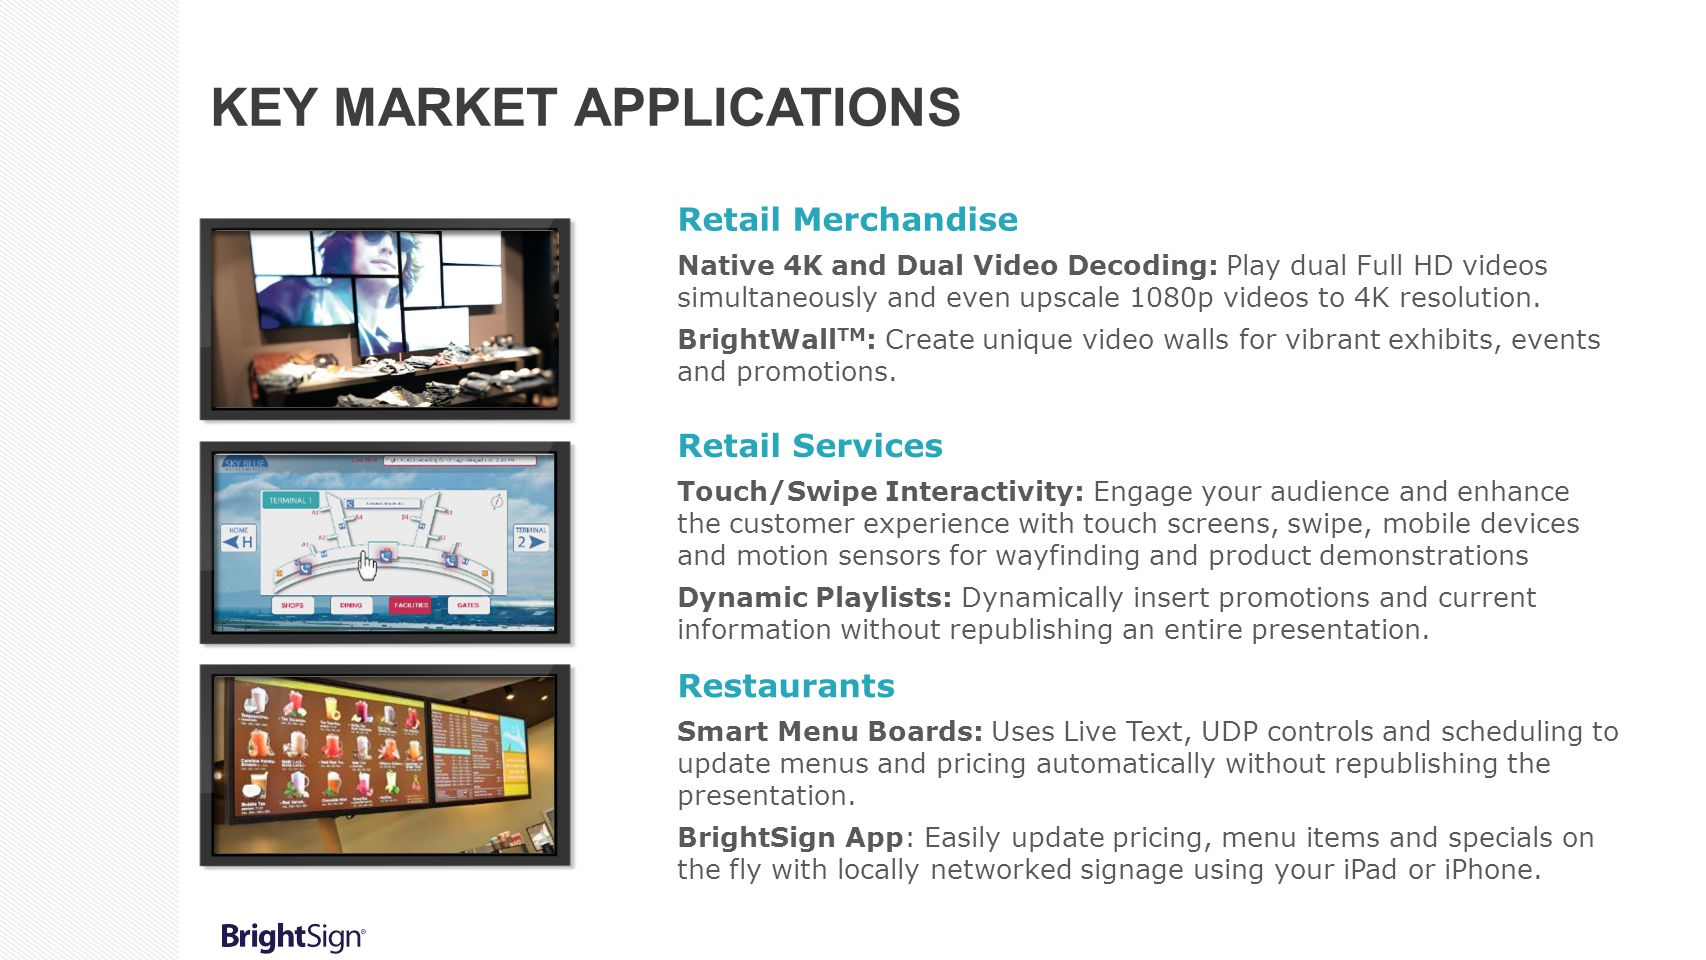 Retail Services Touch/Swipe Interactivity: Engage your audience and enhance the customer experience with touch screens, swipe, mobile devices and moti